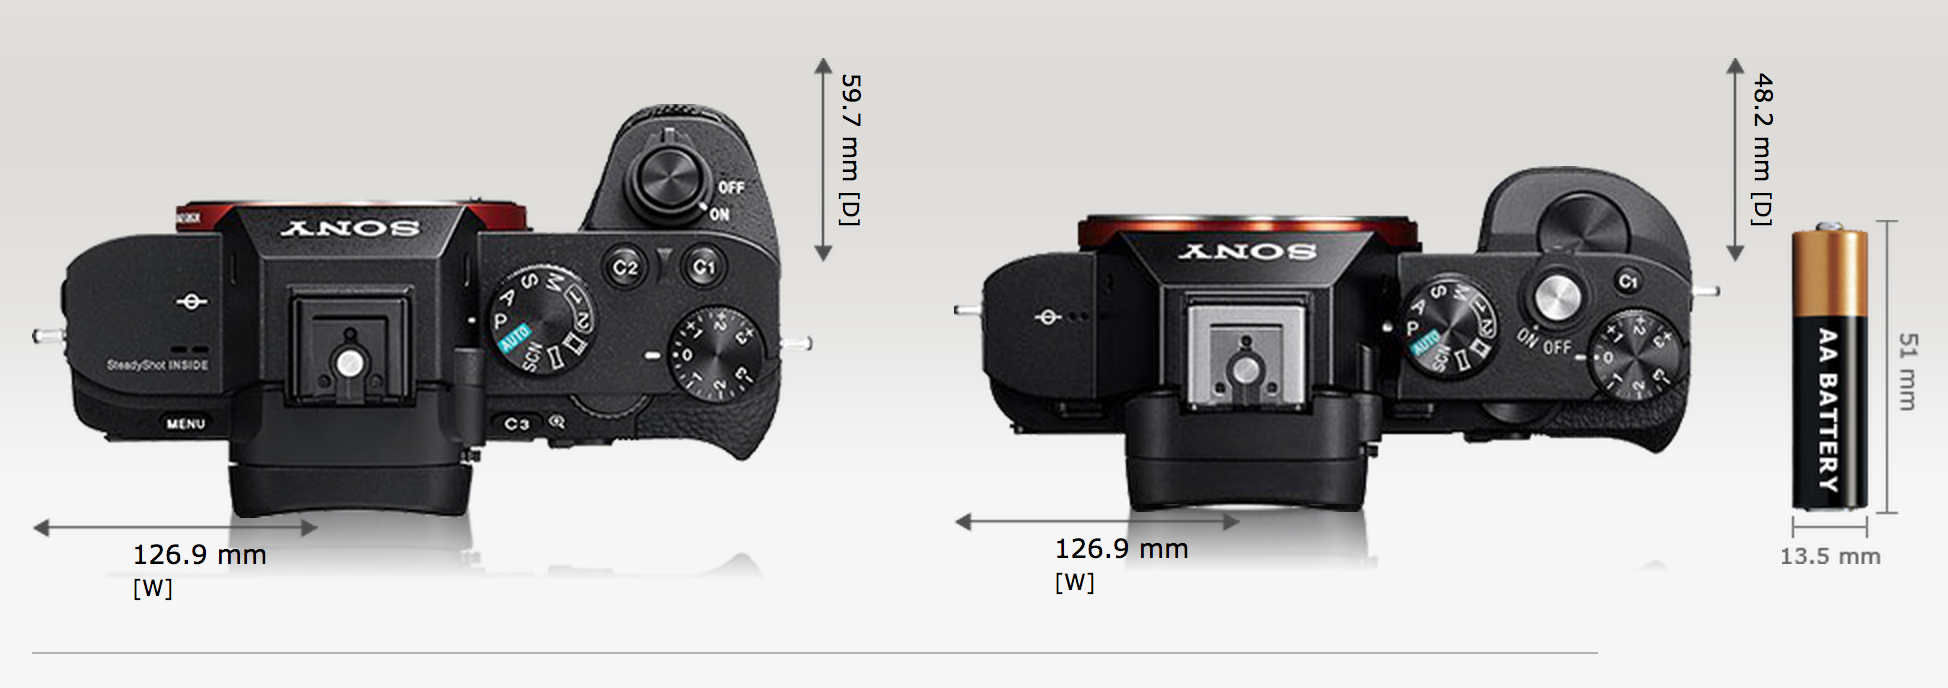 sony a 7 ii how to change shutter speed